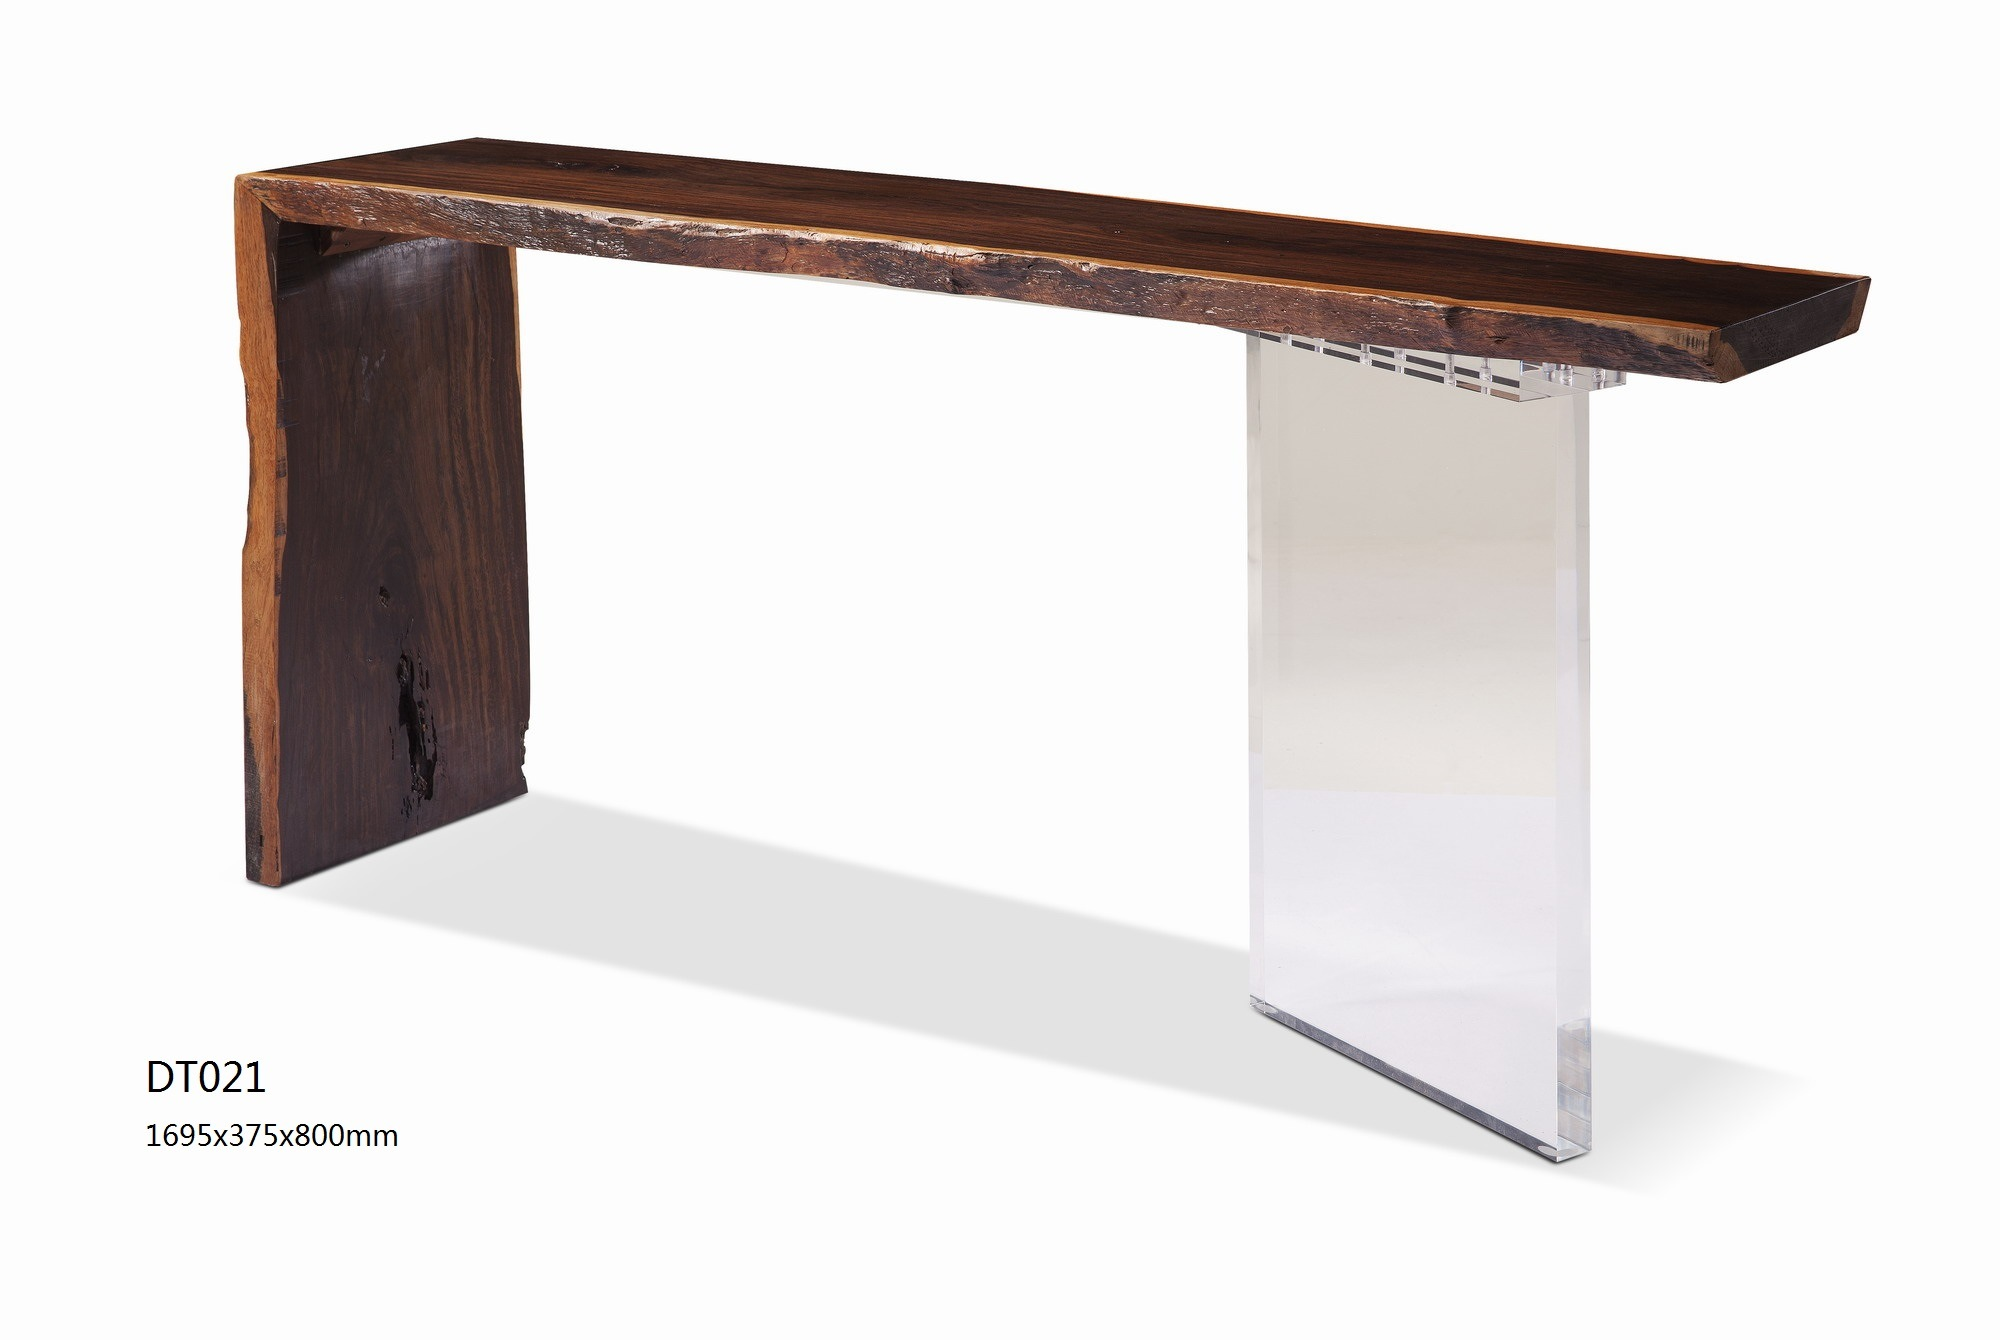 China high end solid ebony wood console table with acrylic base china high end solid ebony wood console table with acrylic base sc 002 china console table table geotapseo Image collections